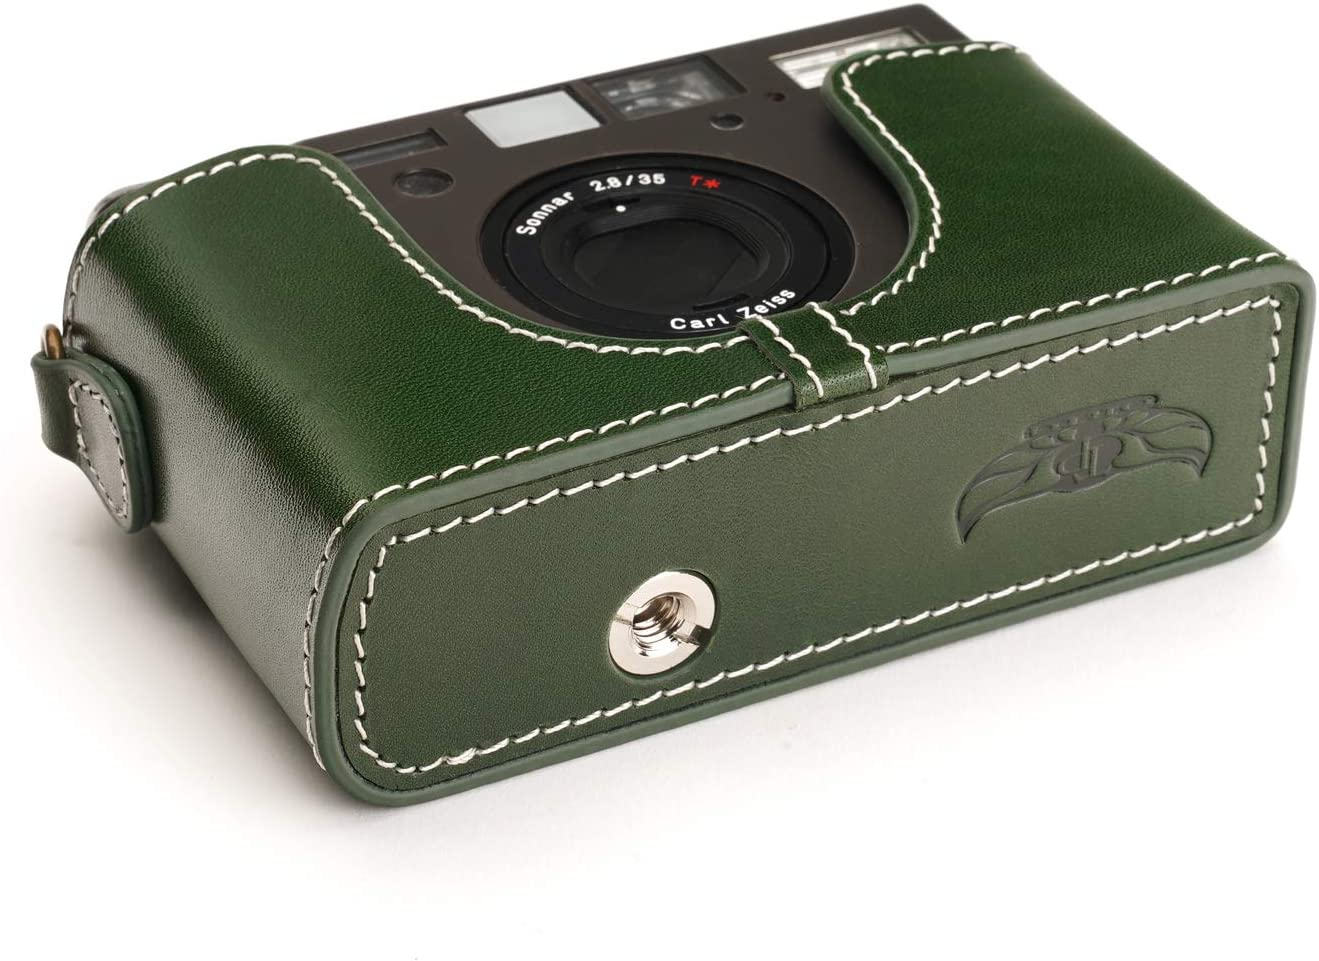 BolinUS Handmade Genuine Real Leather Half Camera Case Bag Cover for Contax T3 Camera with Hand Strap Contax T3 Case LavaBrown